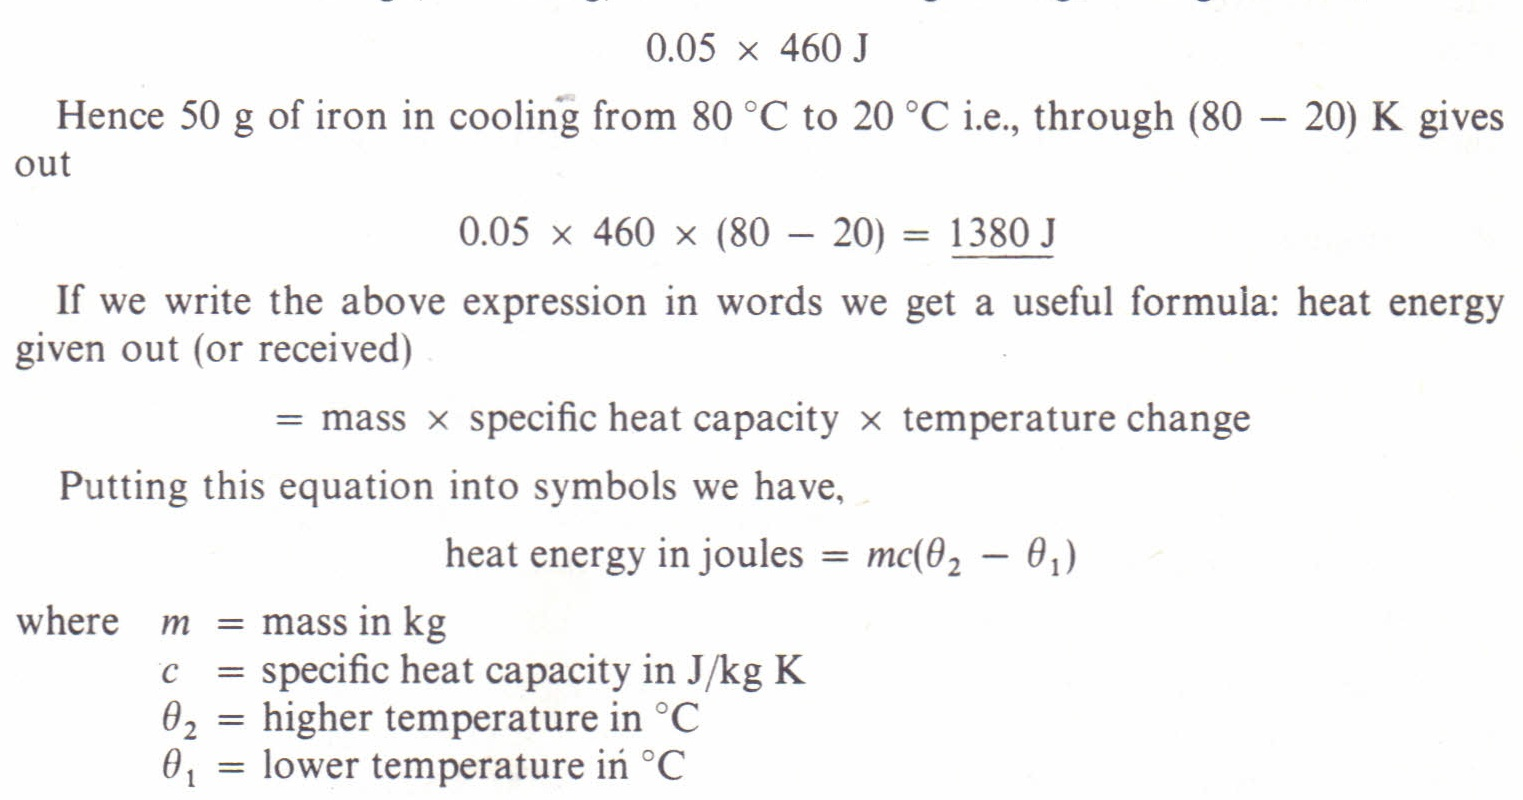 What Is The Equation For Finding Heat Energy From